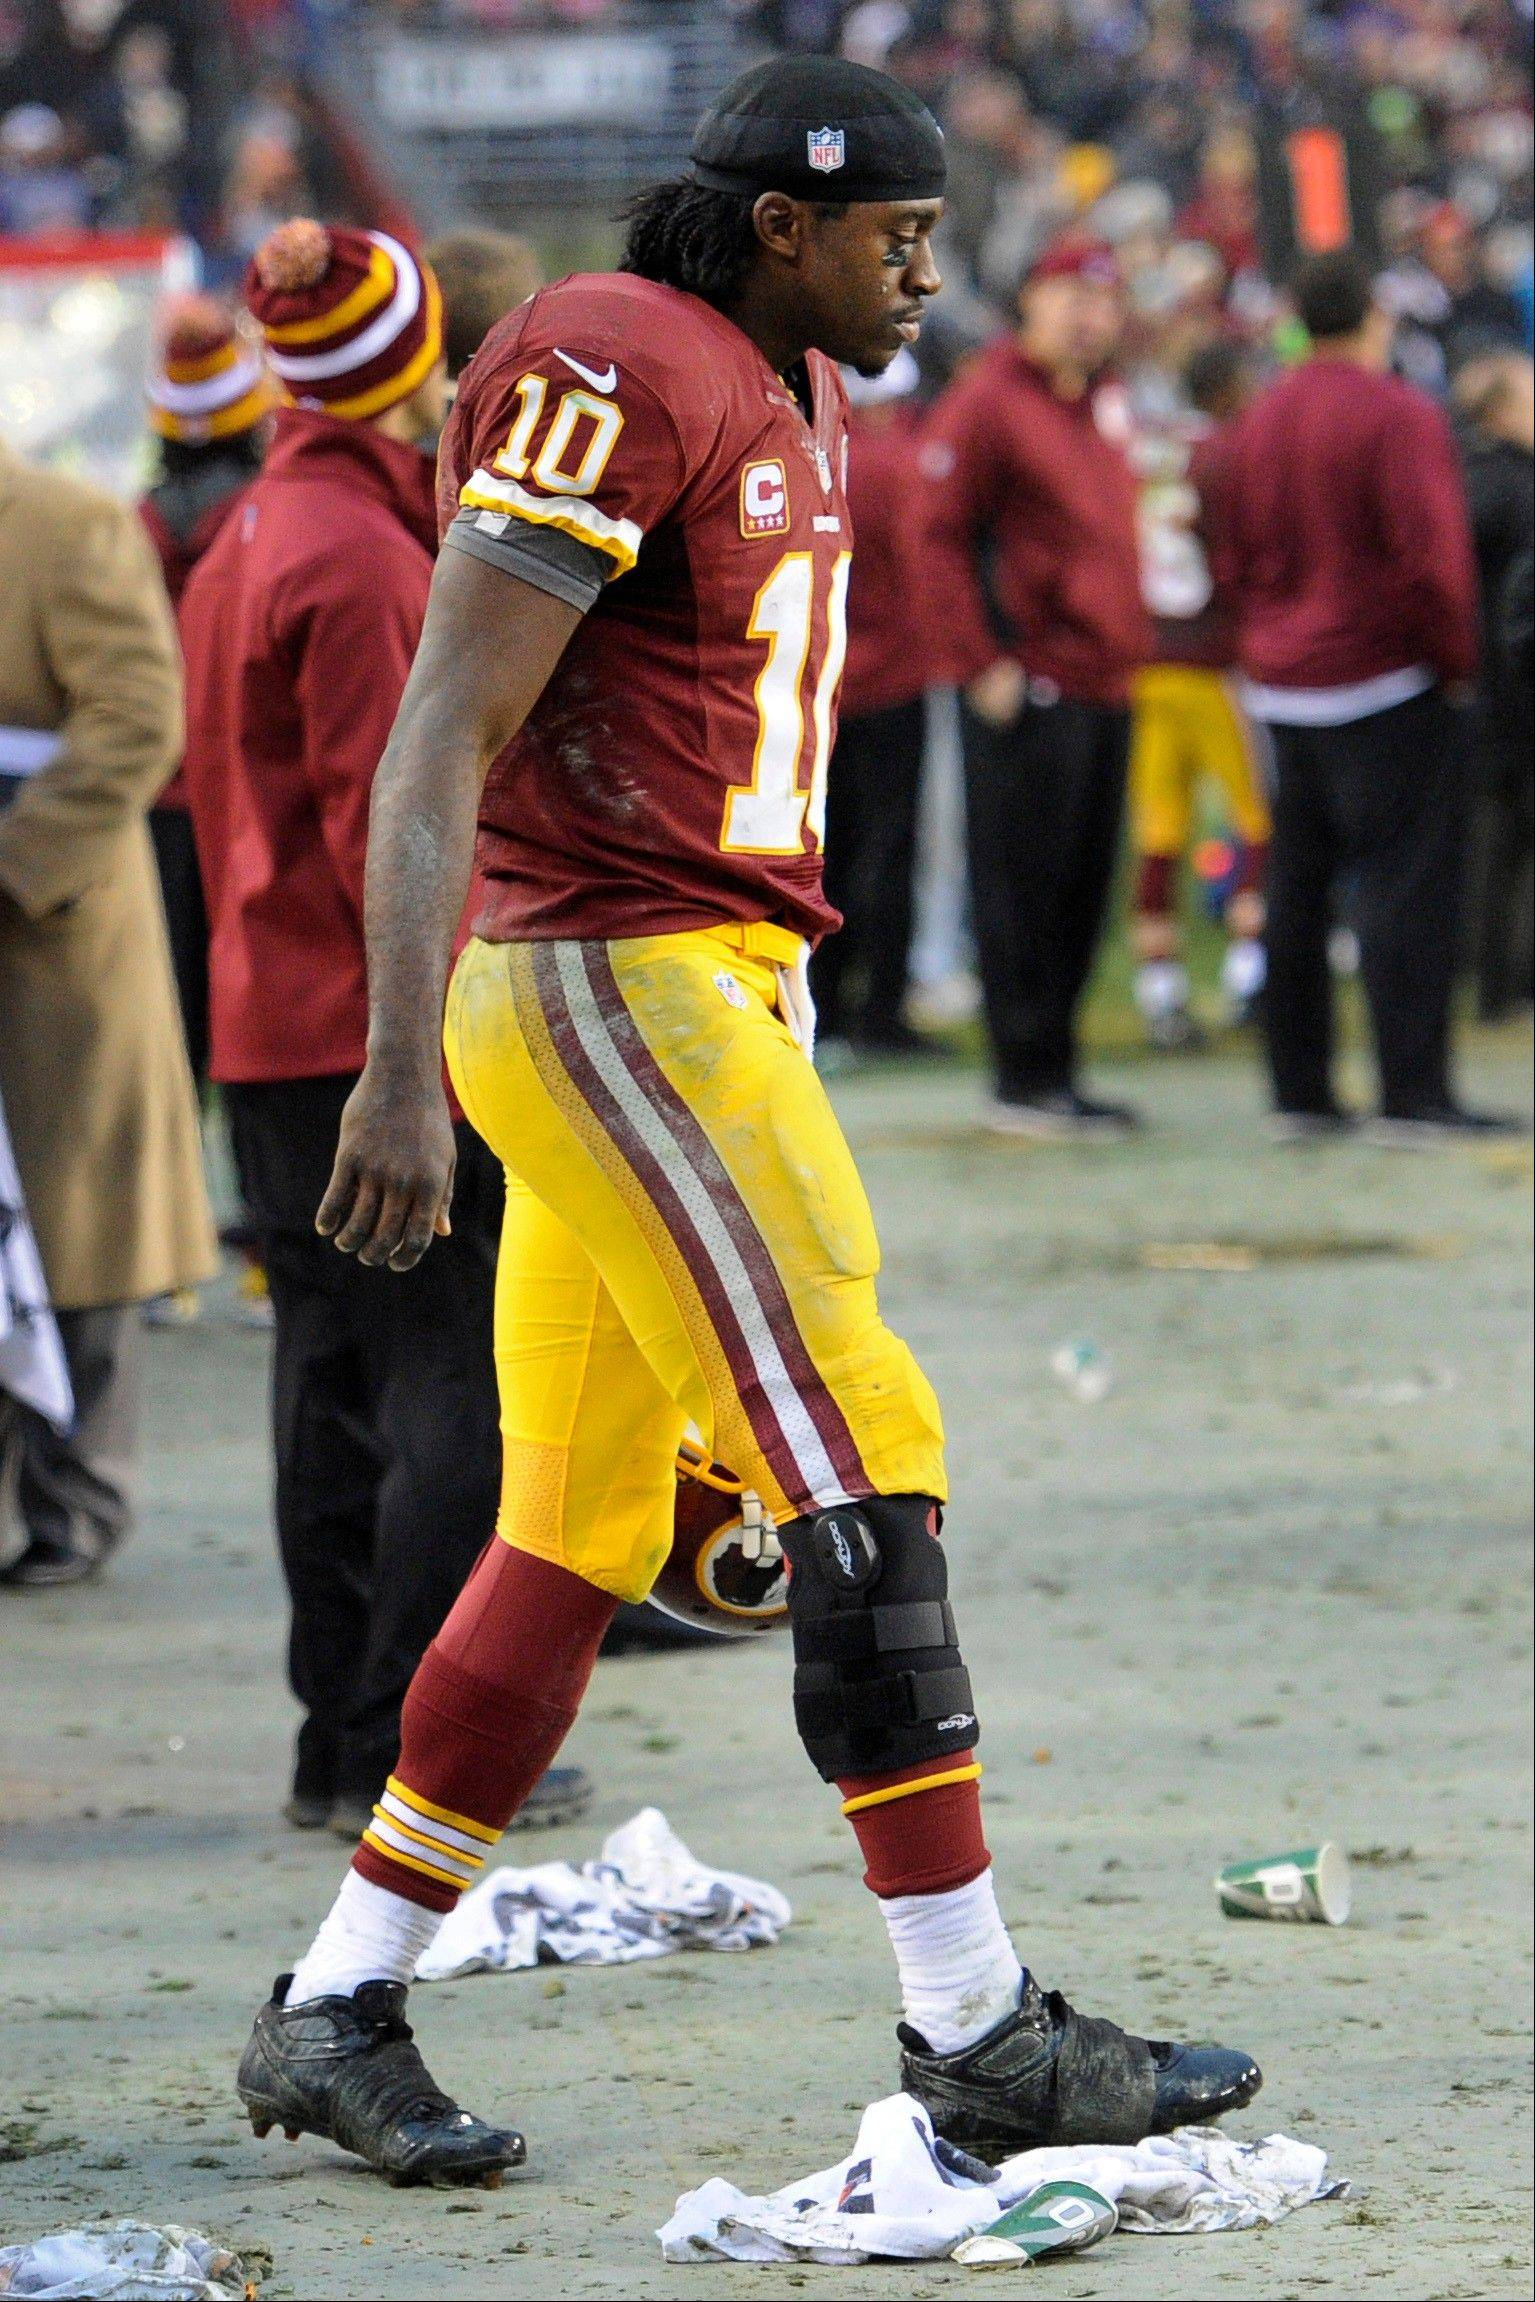 Washington Redskins quarterback Robert Griffin III walks through the bench area with a brace on his knee during overtime of Sunday�s game against the Ravens at Baltimore.